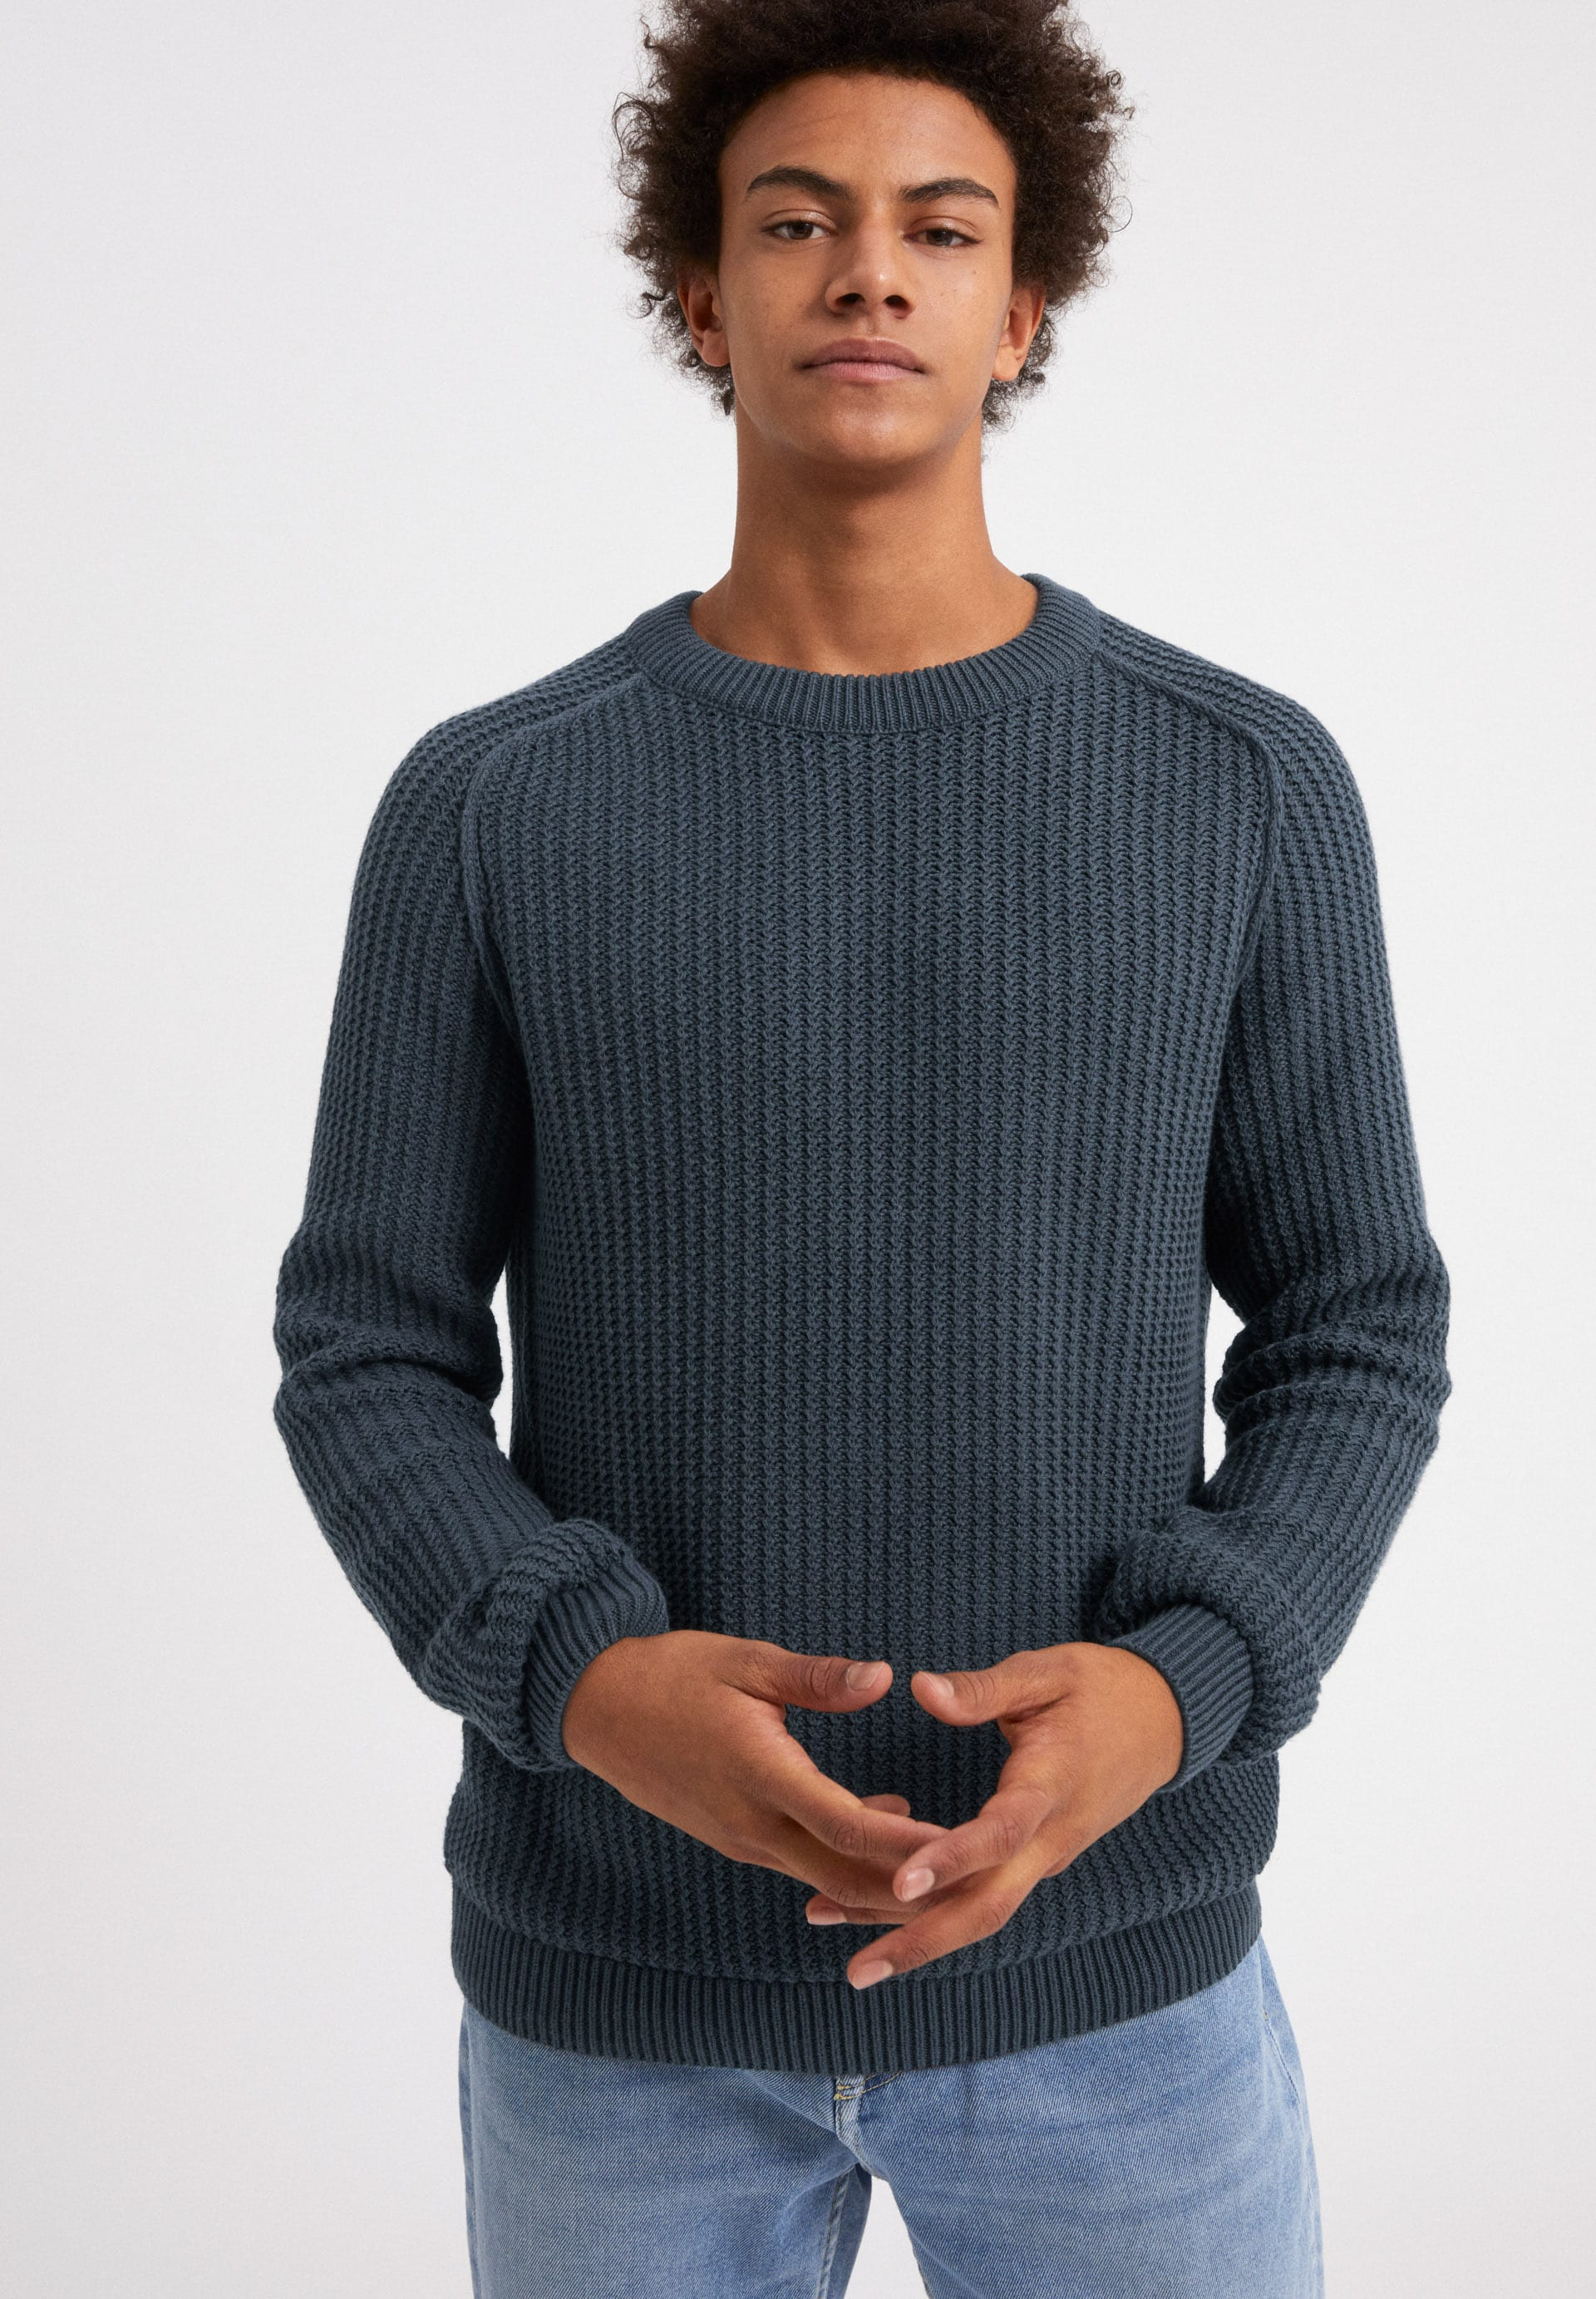 DAAMO EARTHCOLORS® Sweater made of Organic Cotton Linen Mix